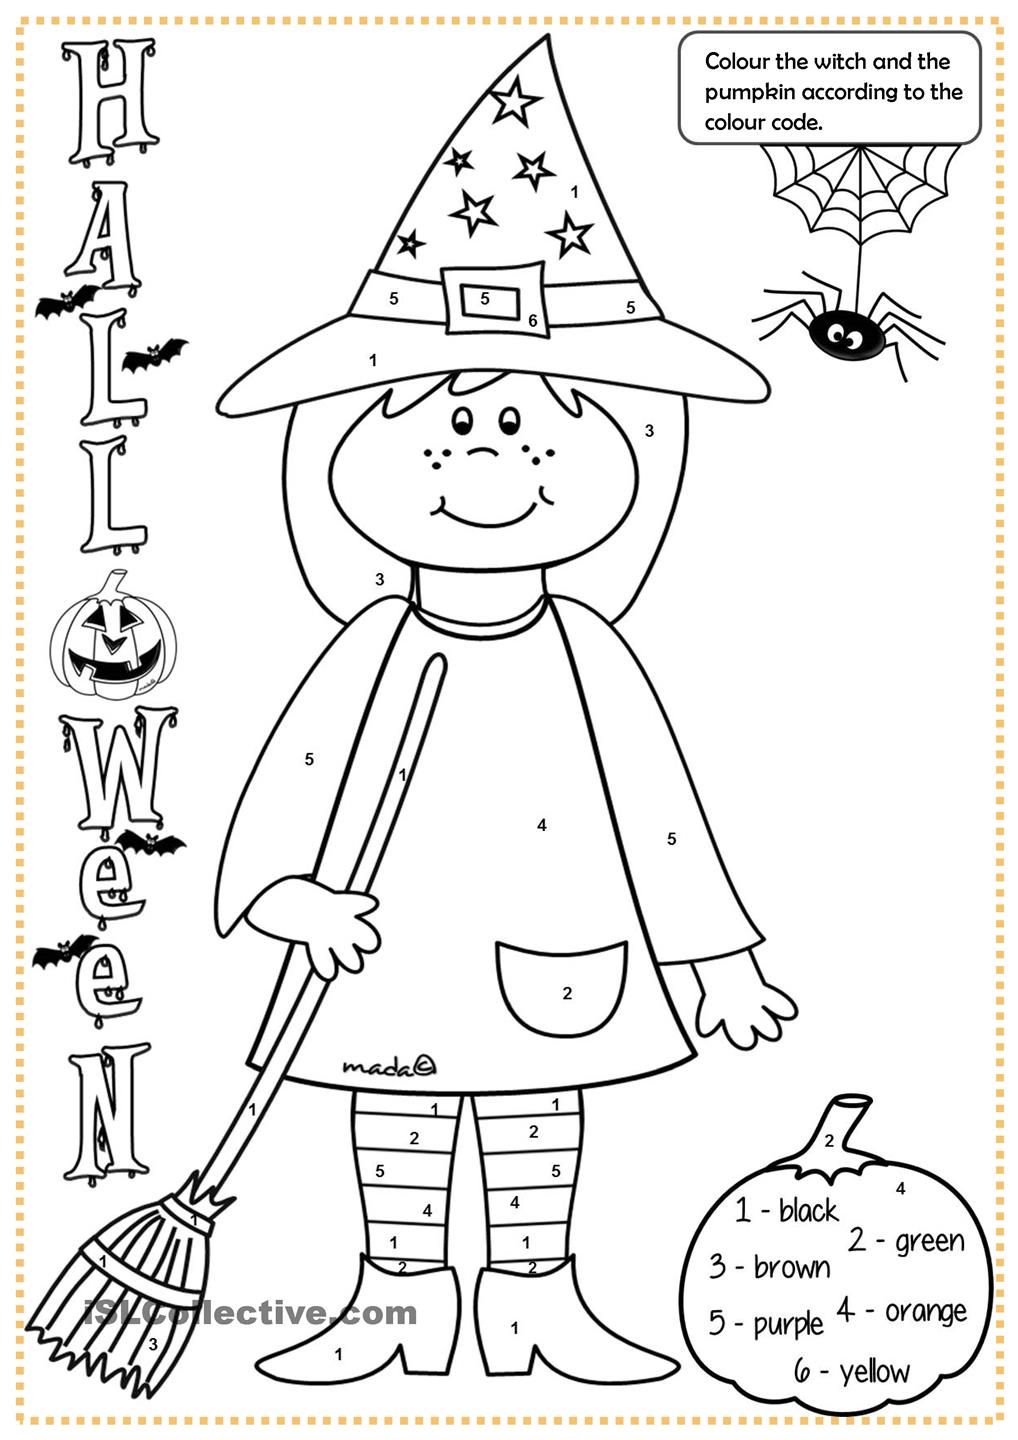 Halloween Witch - Colouring   Halloween Worksheets